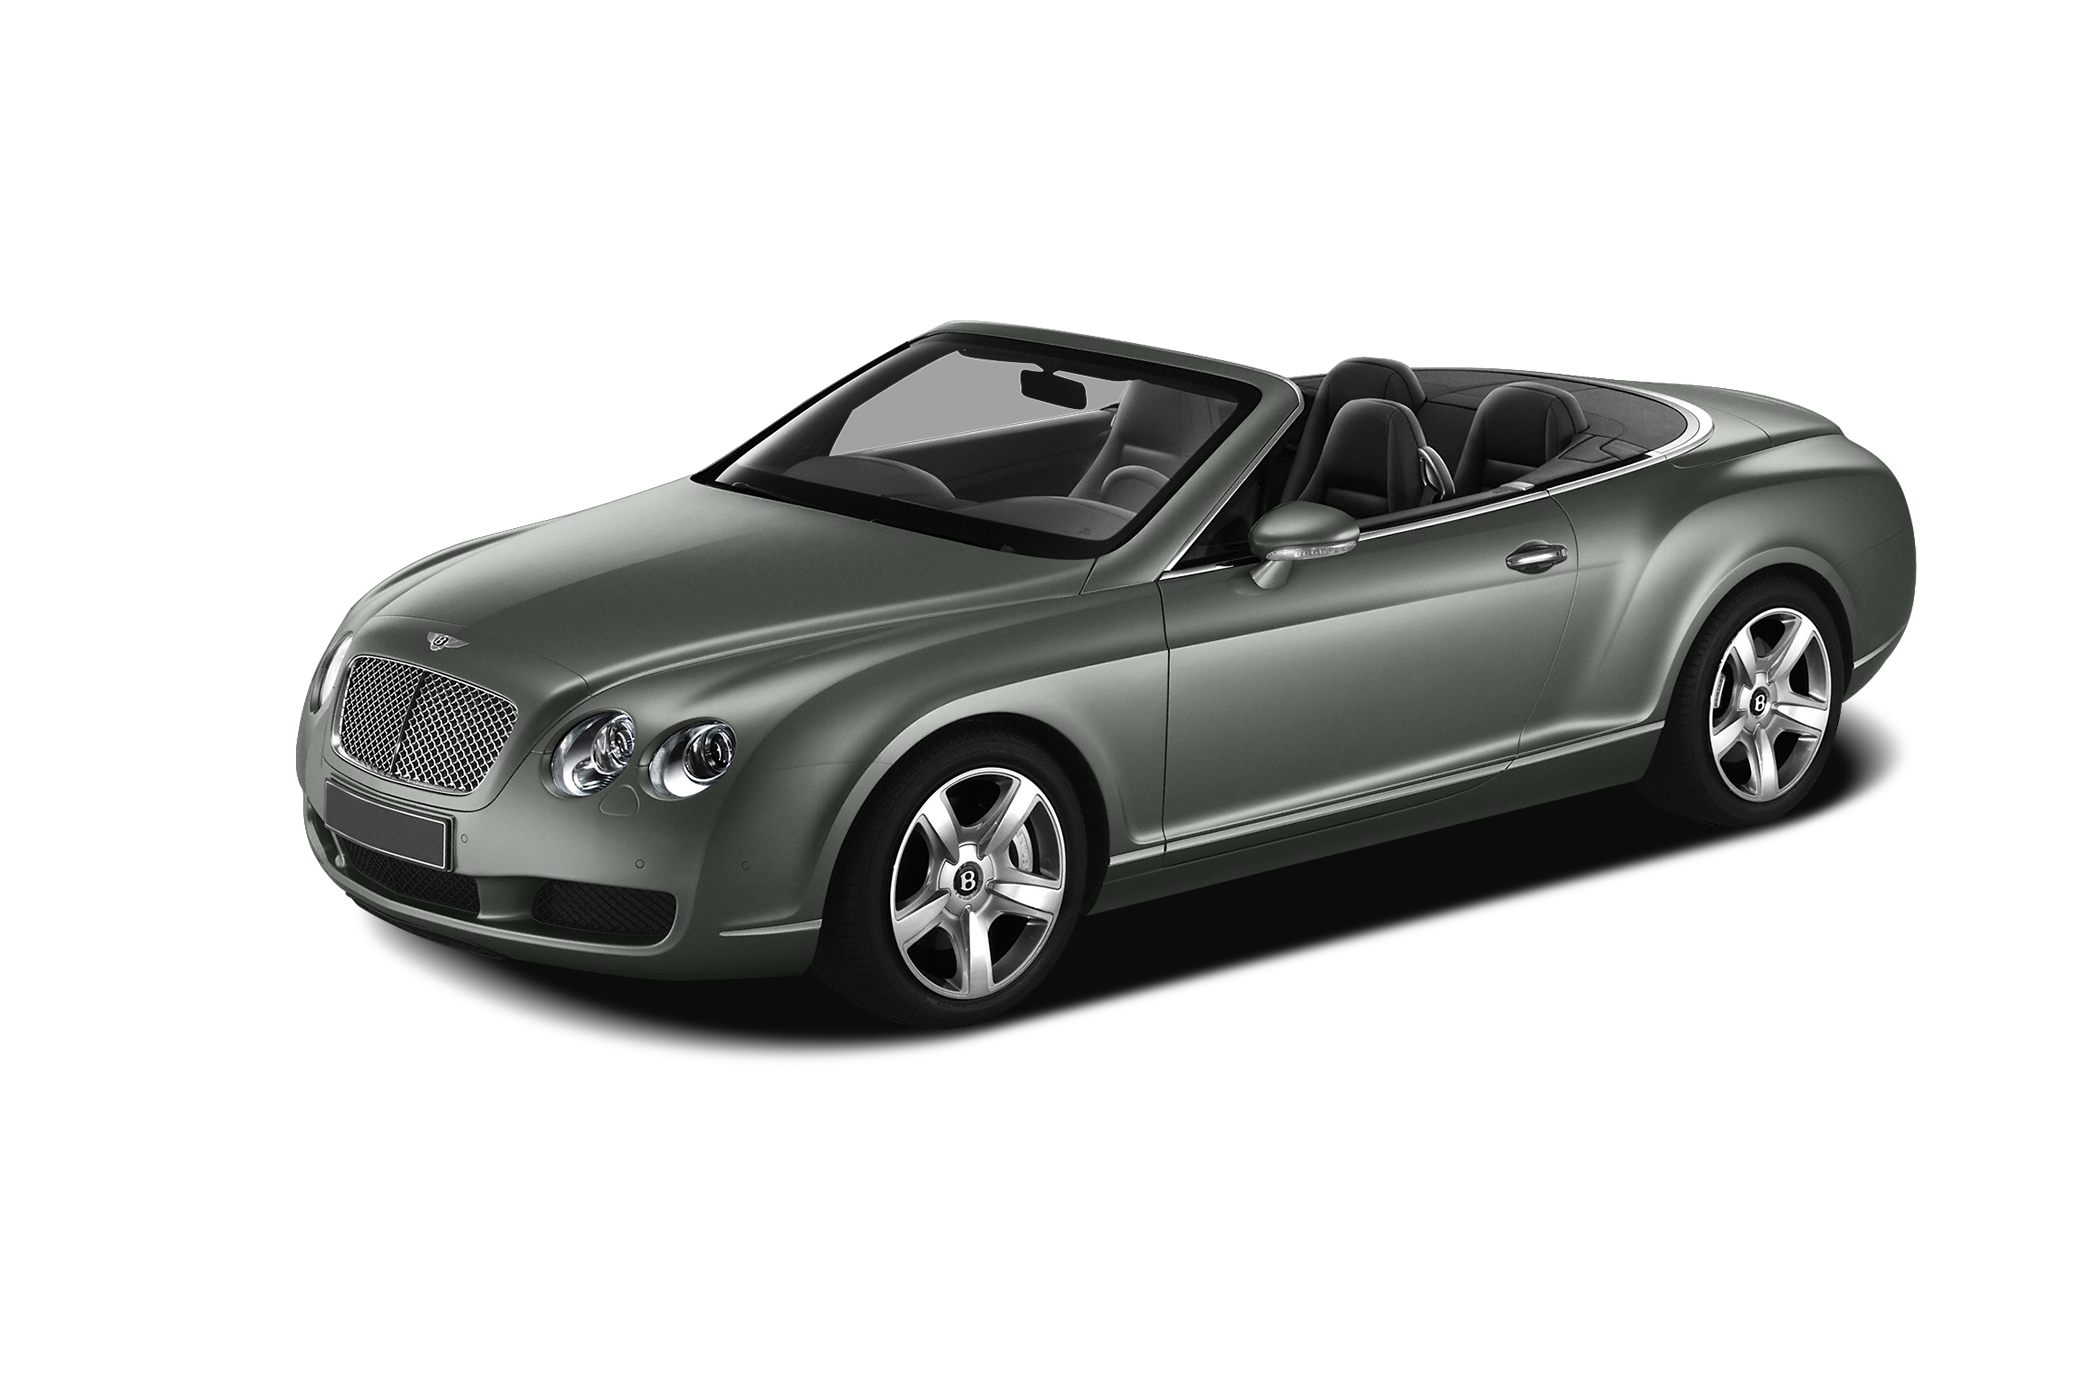 2009 Bentley Continental GTC Information